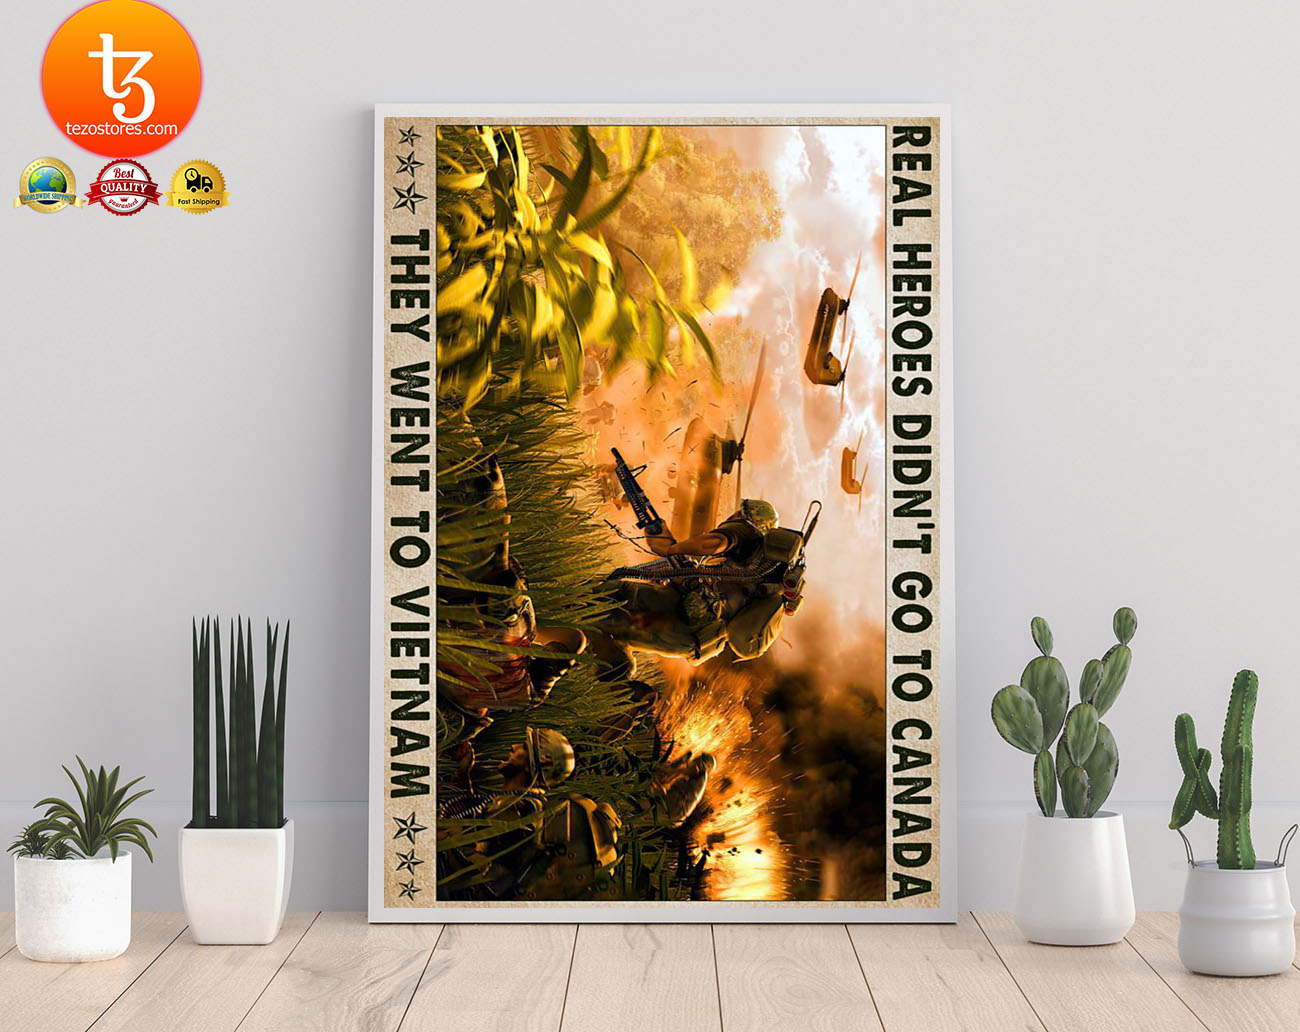 Real heroes didn't go to canada they went to Vietnam poster 21